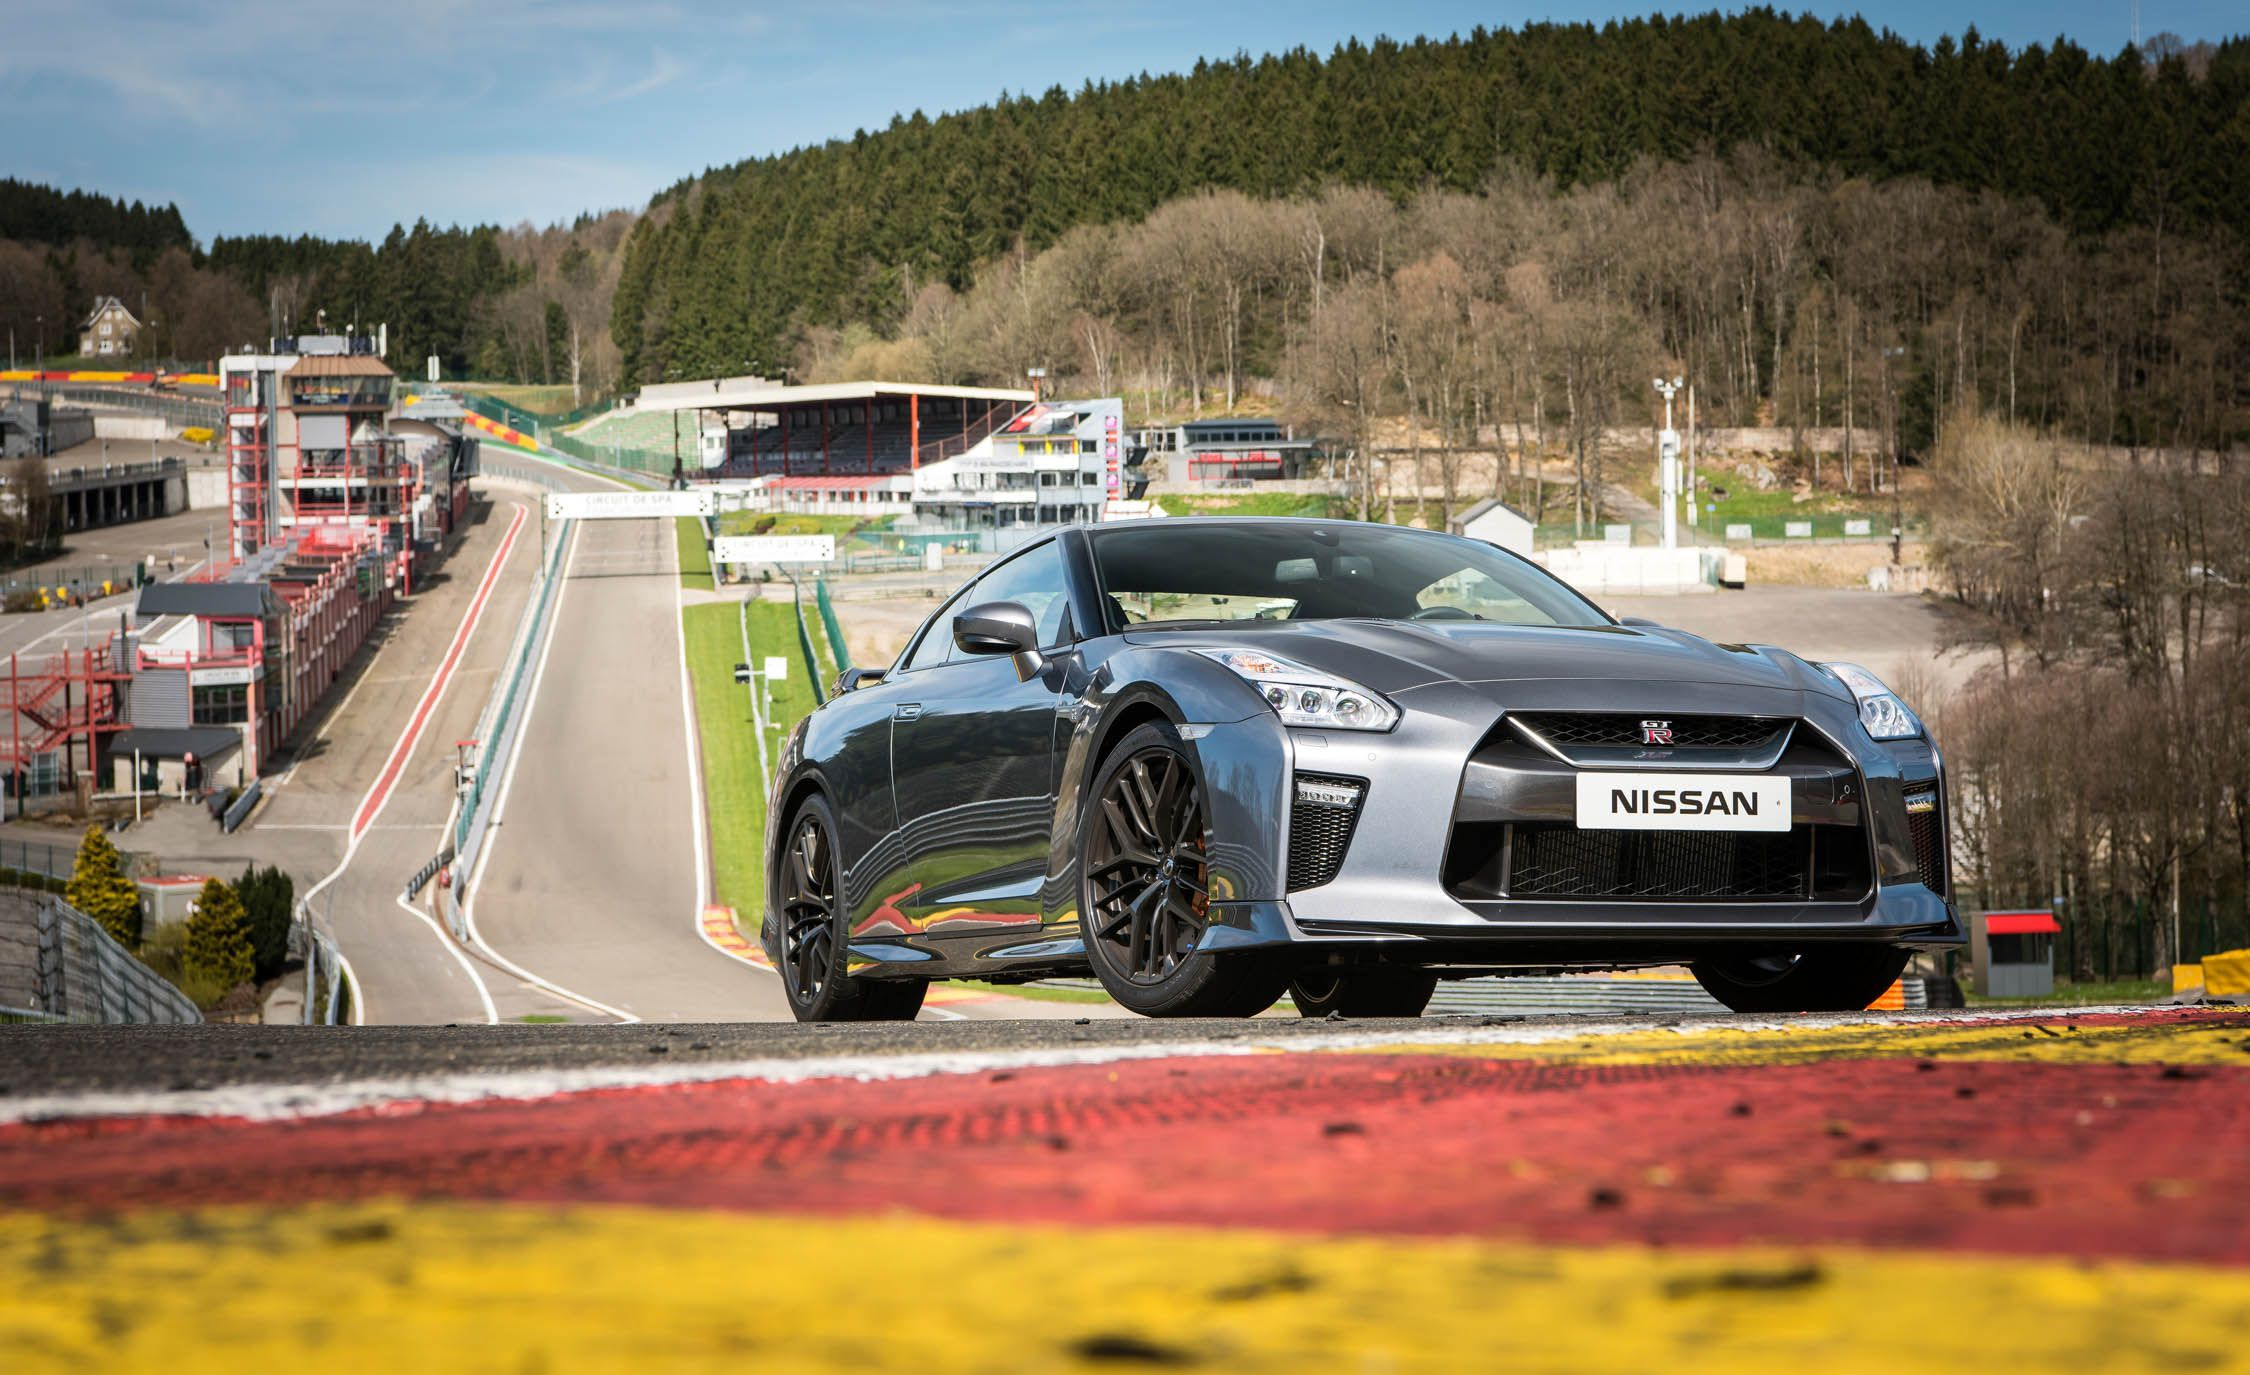 Used Nissan Gt-r for Sale Fresh 2019 Nissan Gt R Reviews